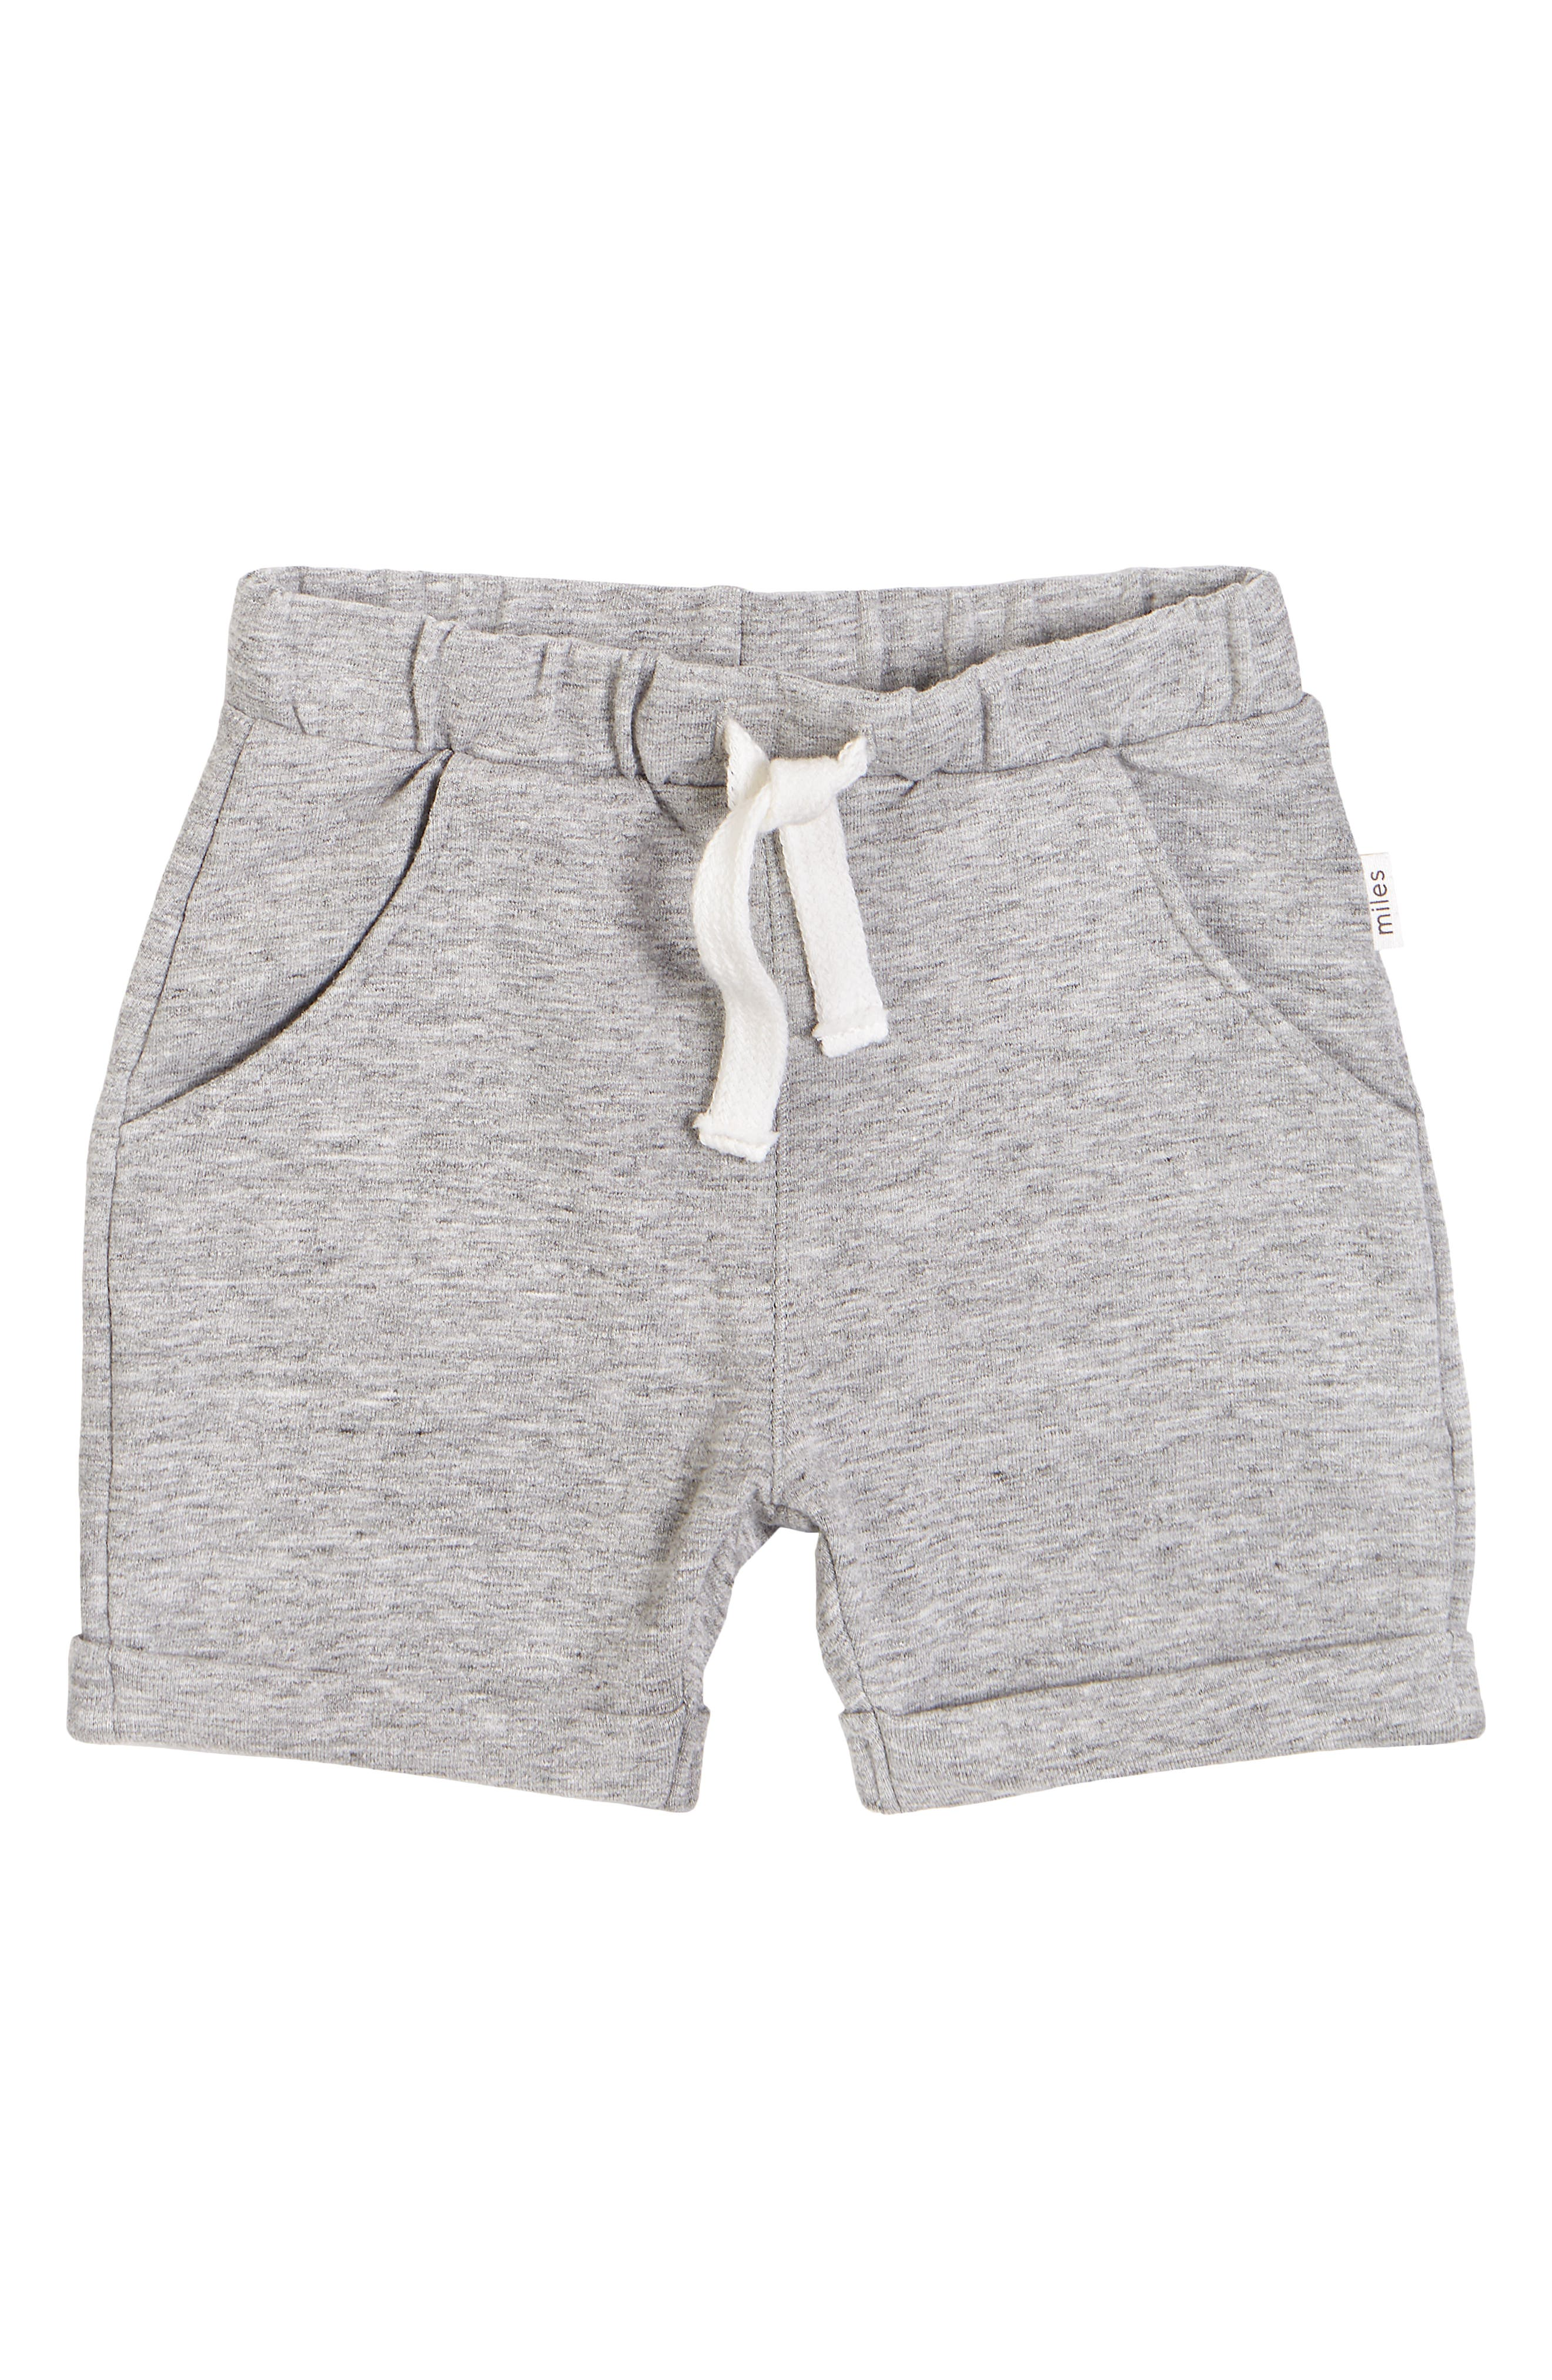 A stretchy waistband helps keep your little one comfortable in easygoing stretch-cotton shorts. Style Name: Miles Baby Organic Cotton Knit Shorts (Toddler & Little Boy). Style Number: 6004561. Available in stores.